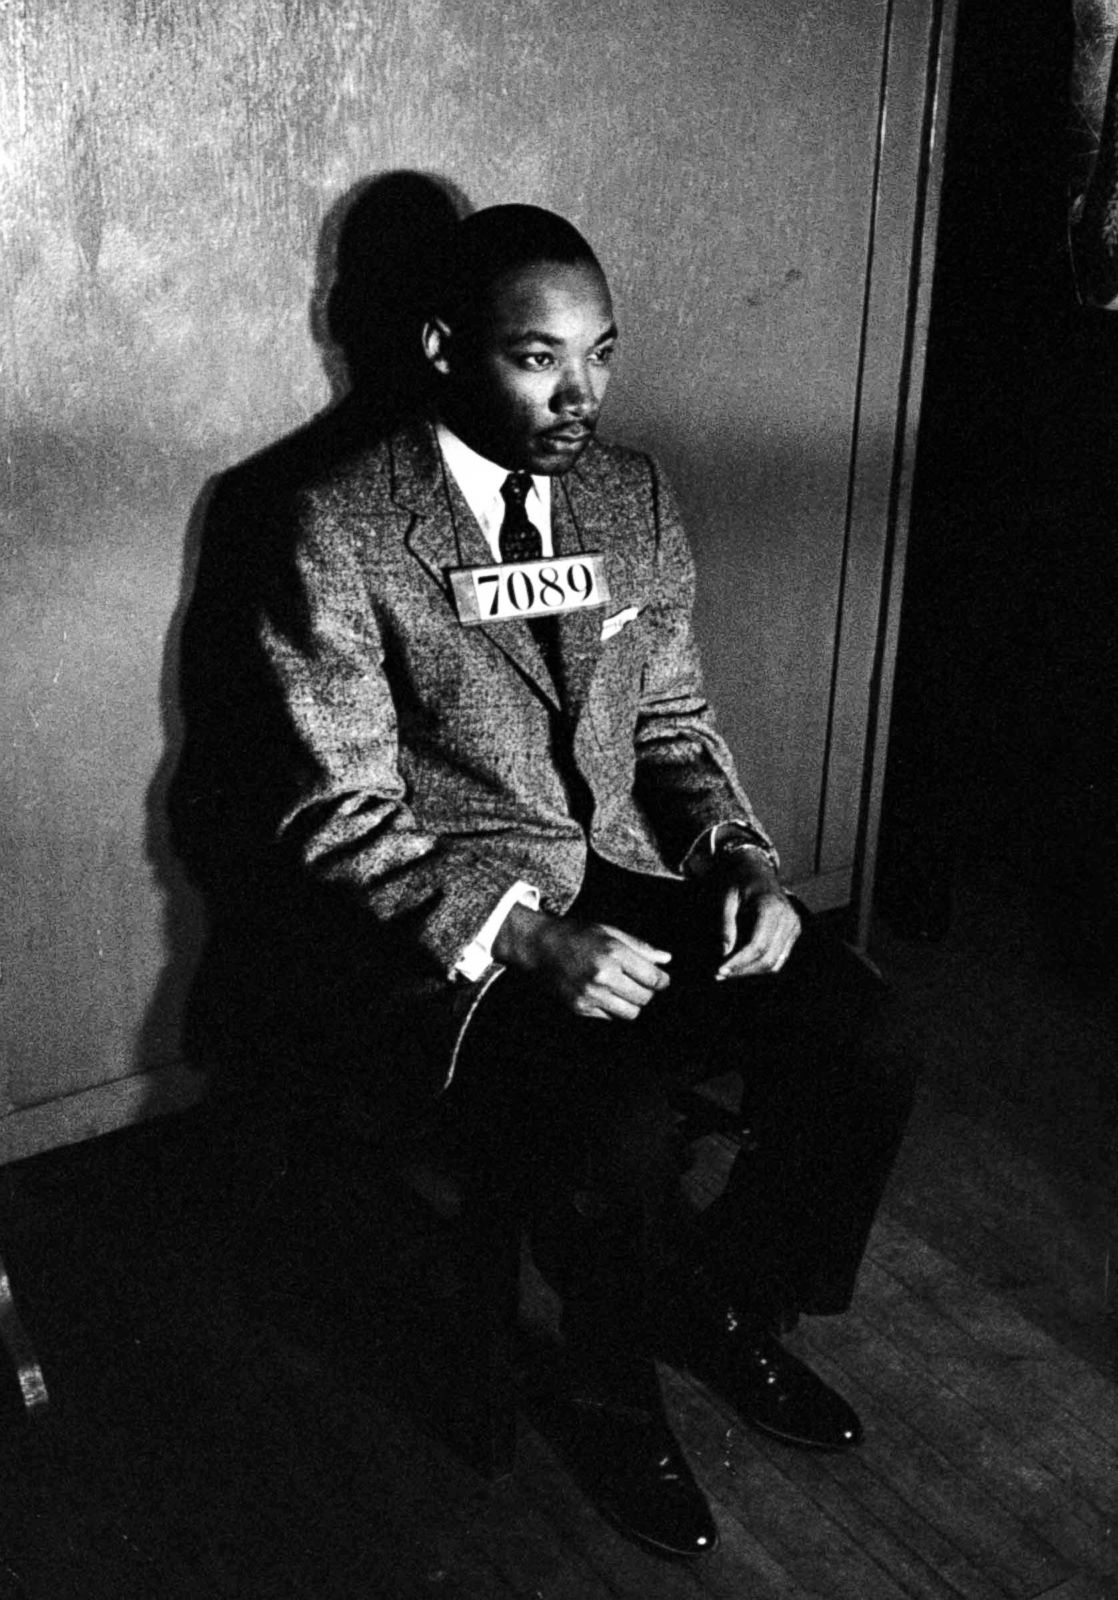 Martin Luther King Jr A Life In Pictures Photos Image 2 Abc News